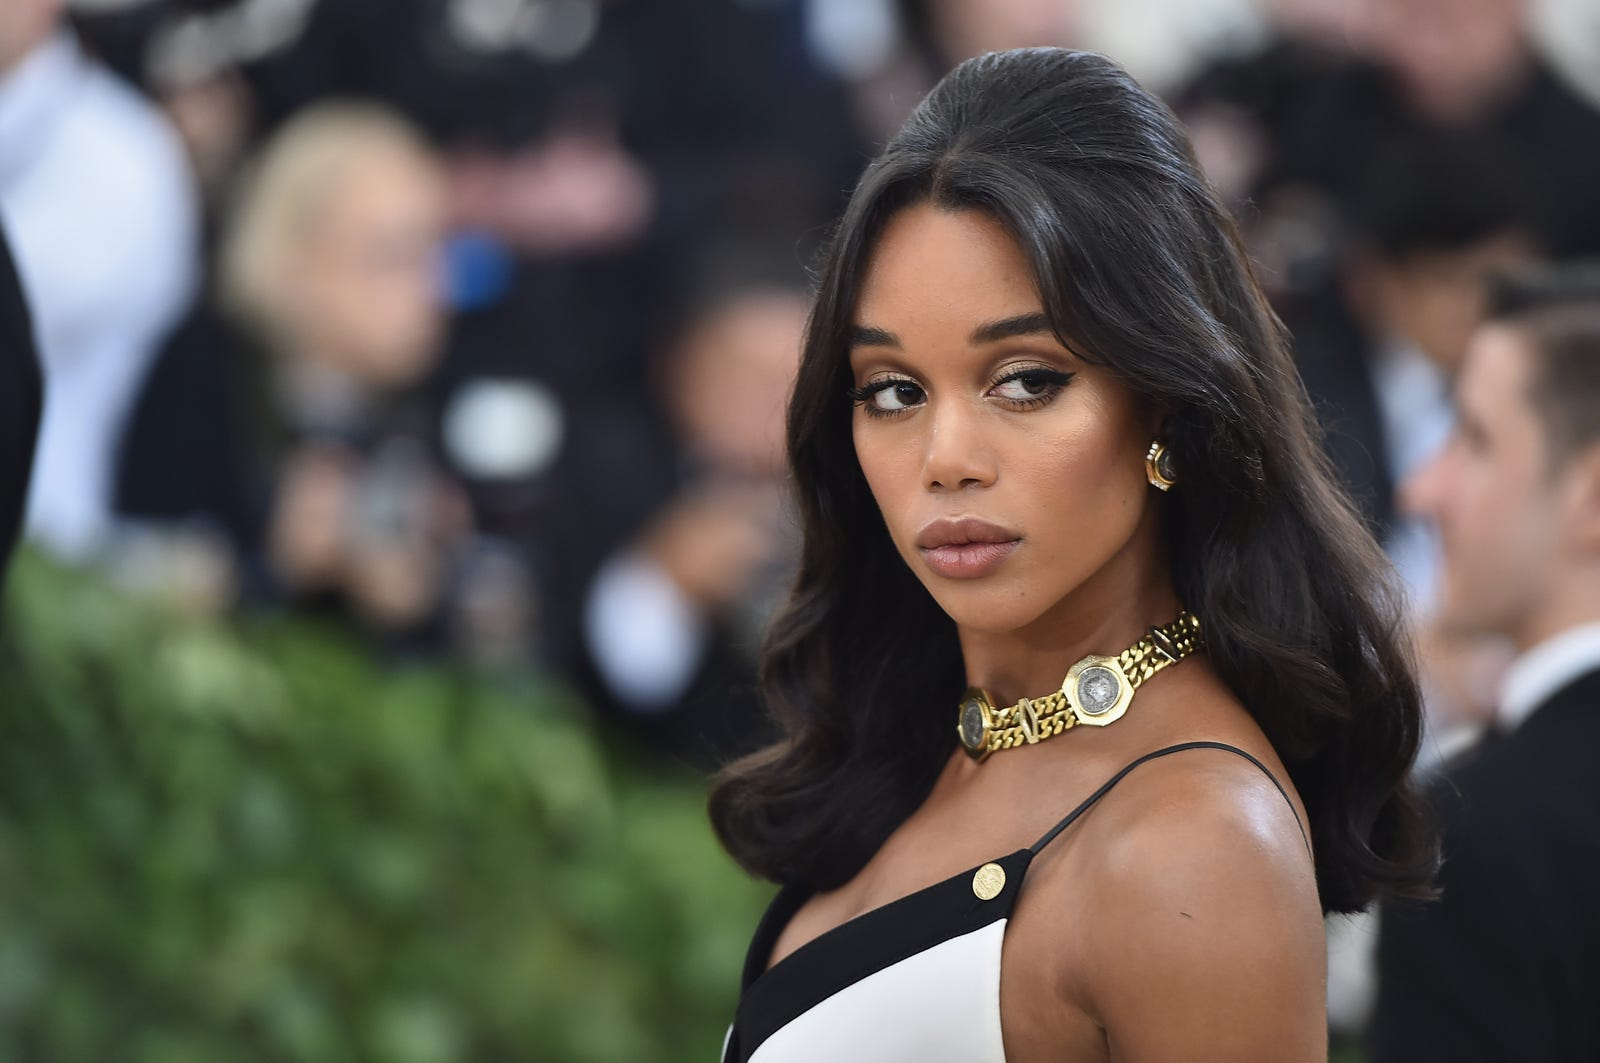 Laura Harrier attends the Heavenly Bodies: Fashion & The Catholic Imagination Costume Institute Gala at The Metropolitan Museum of Art on May 7, 2018 in New York City.